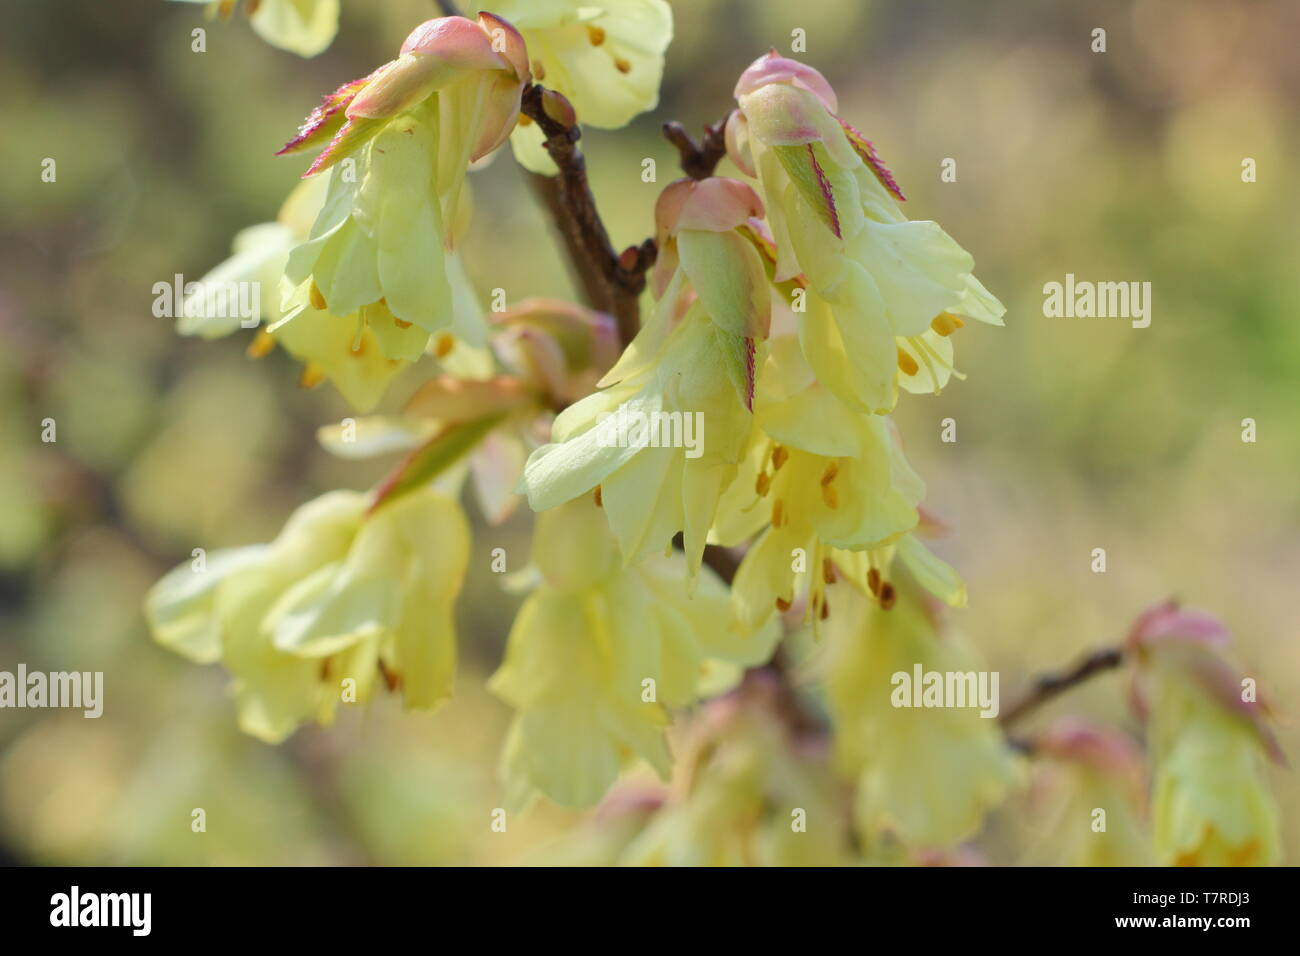 Corylopsis pauciflora. Delicate lemon blossoms of Buttercup witch hazel in early spring - UK - Stock Image